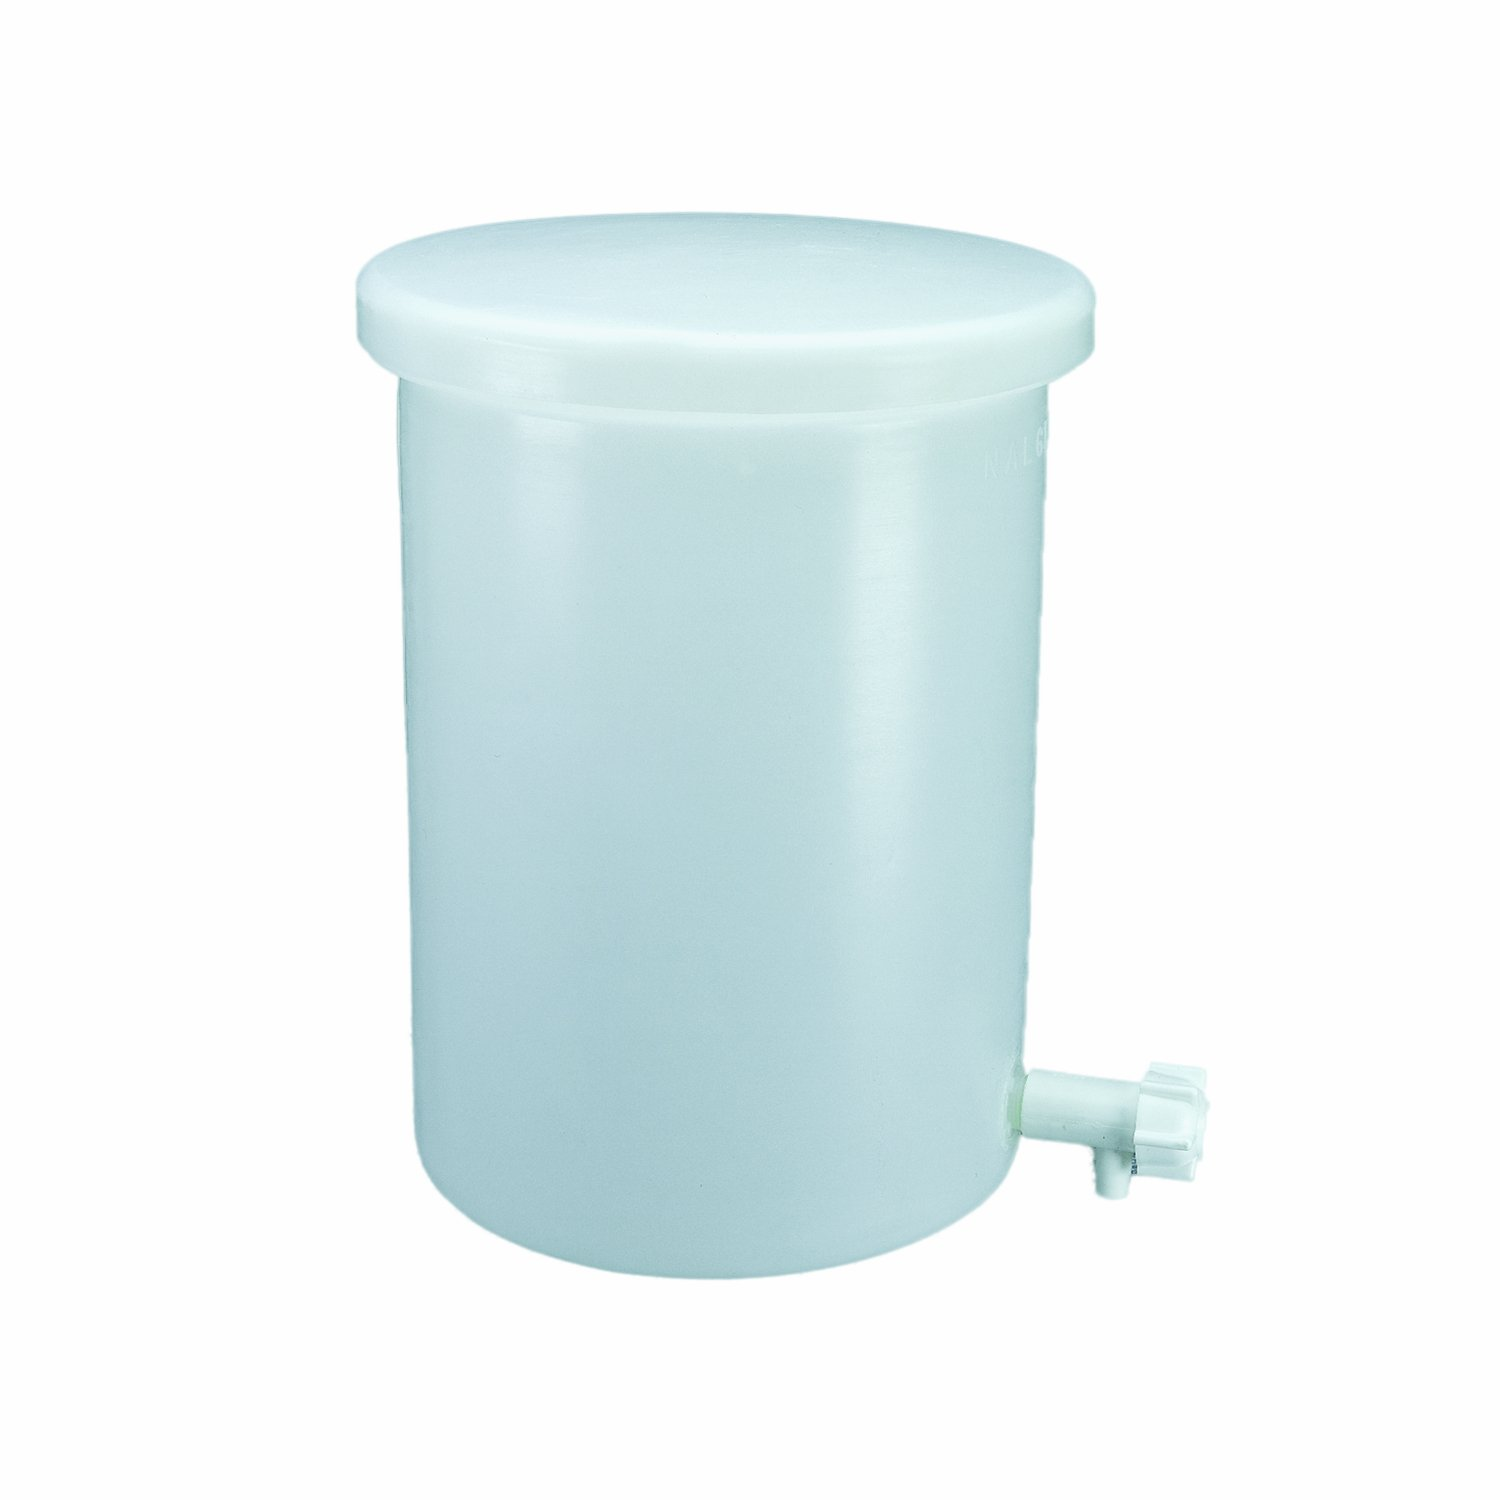 Nalgene 54102-0005 HDPE 19L Lightweight Laboratory Cylindrical Tank, with Cover and Spigot